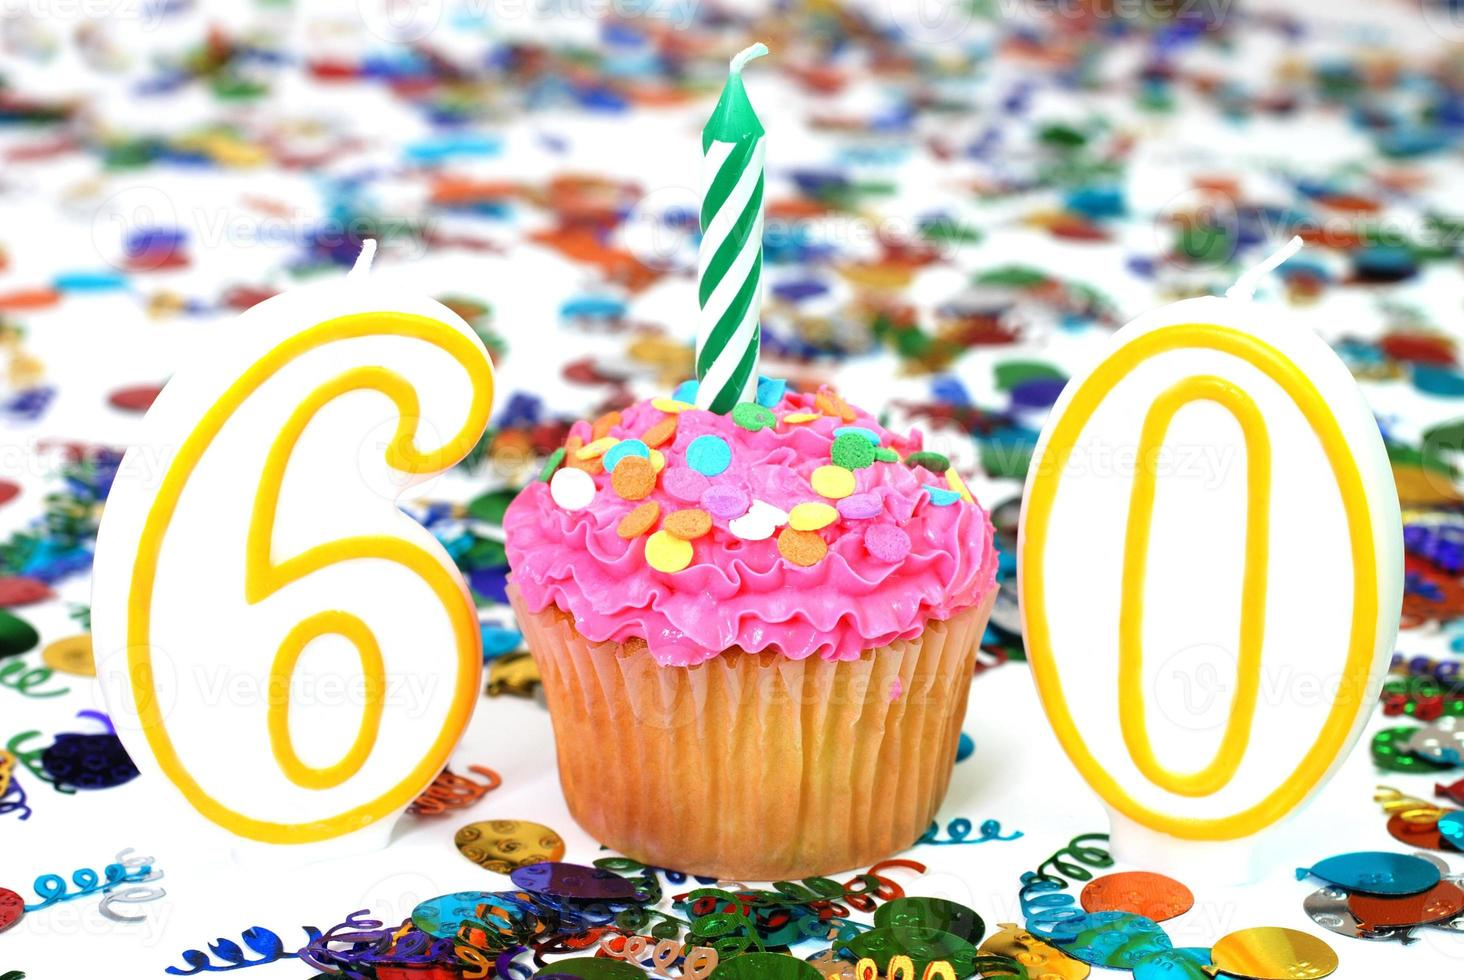 Celebration Cupcake with Candle - Number 60 photo